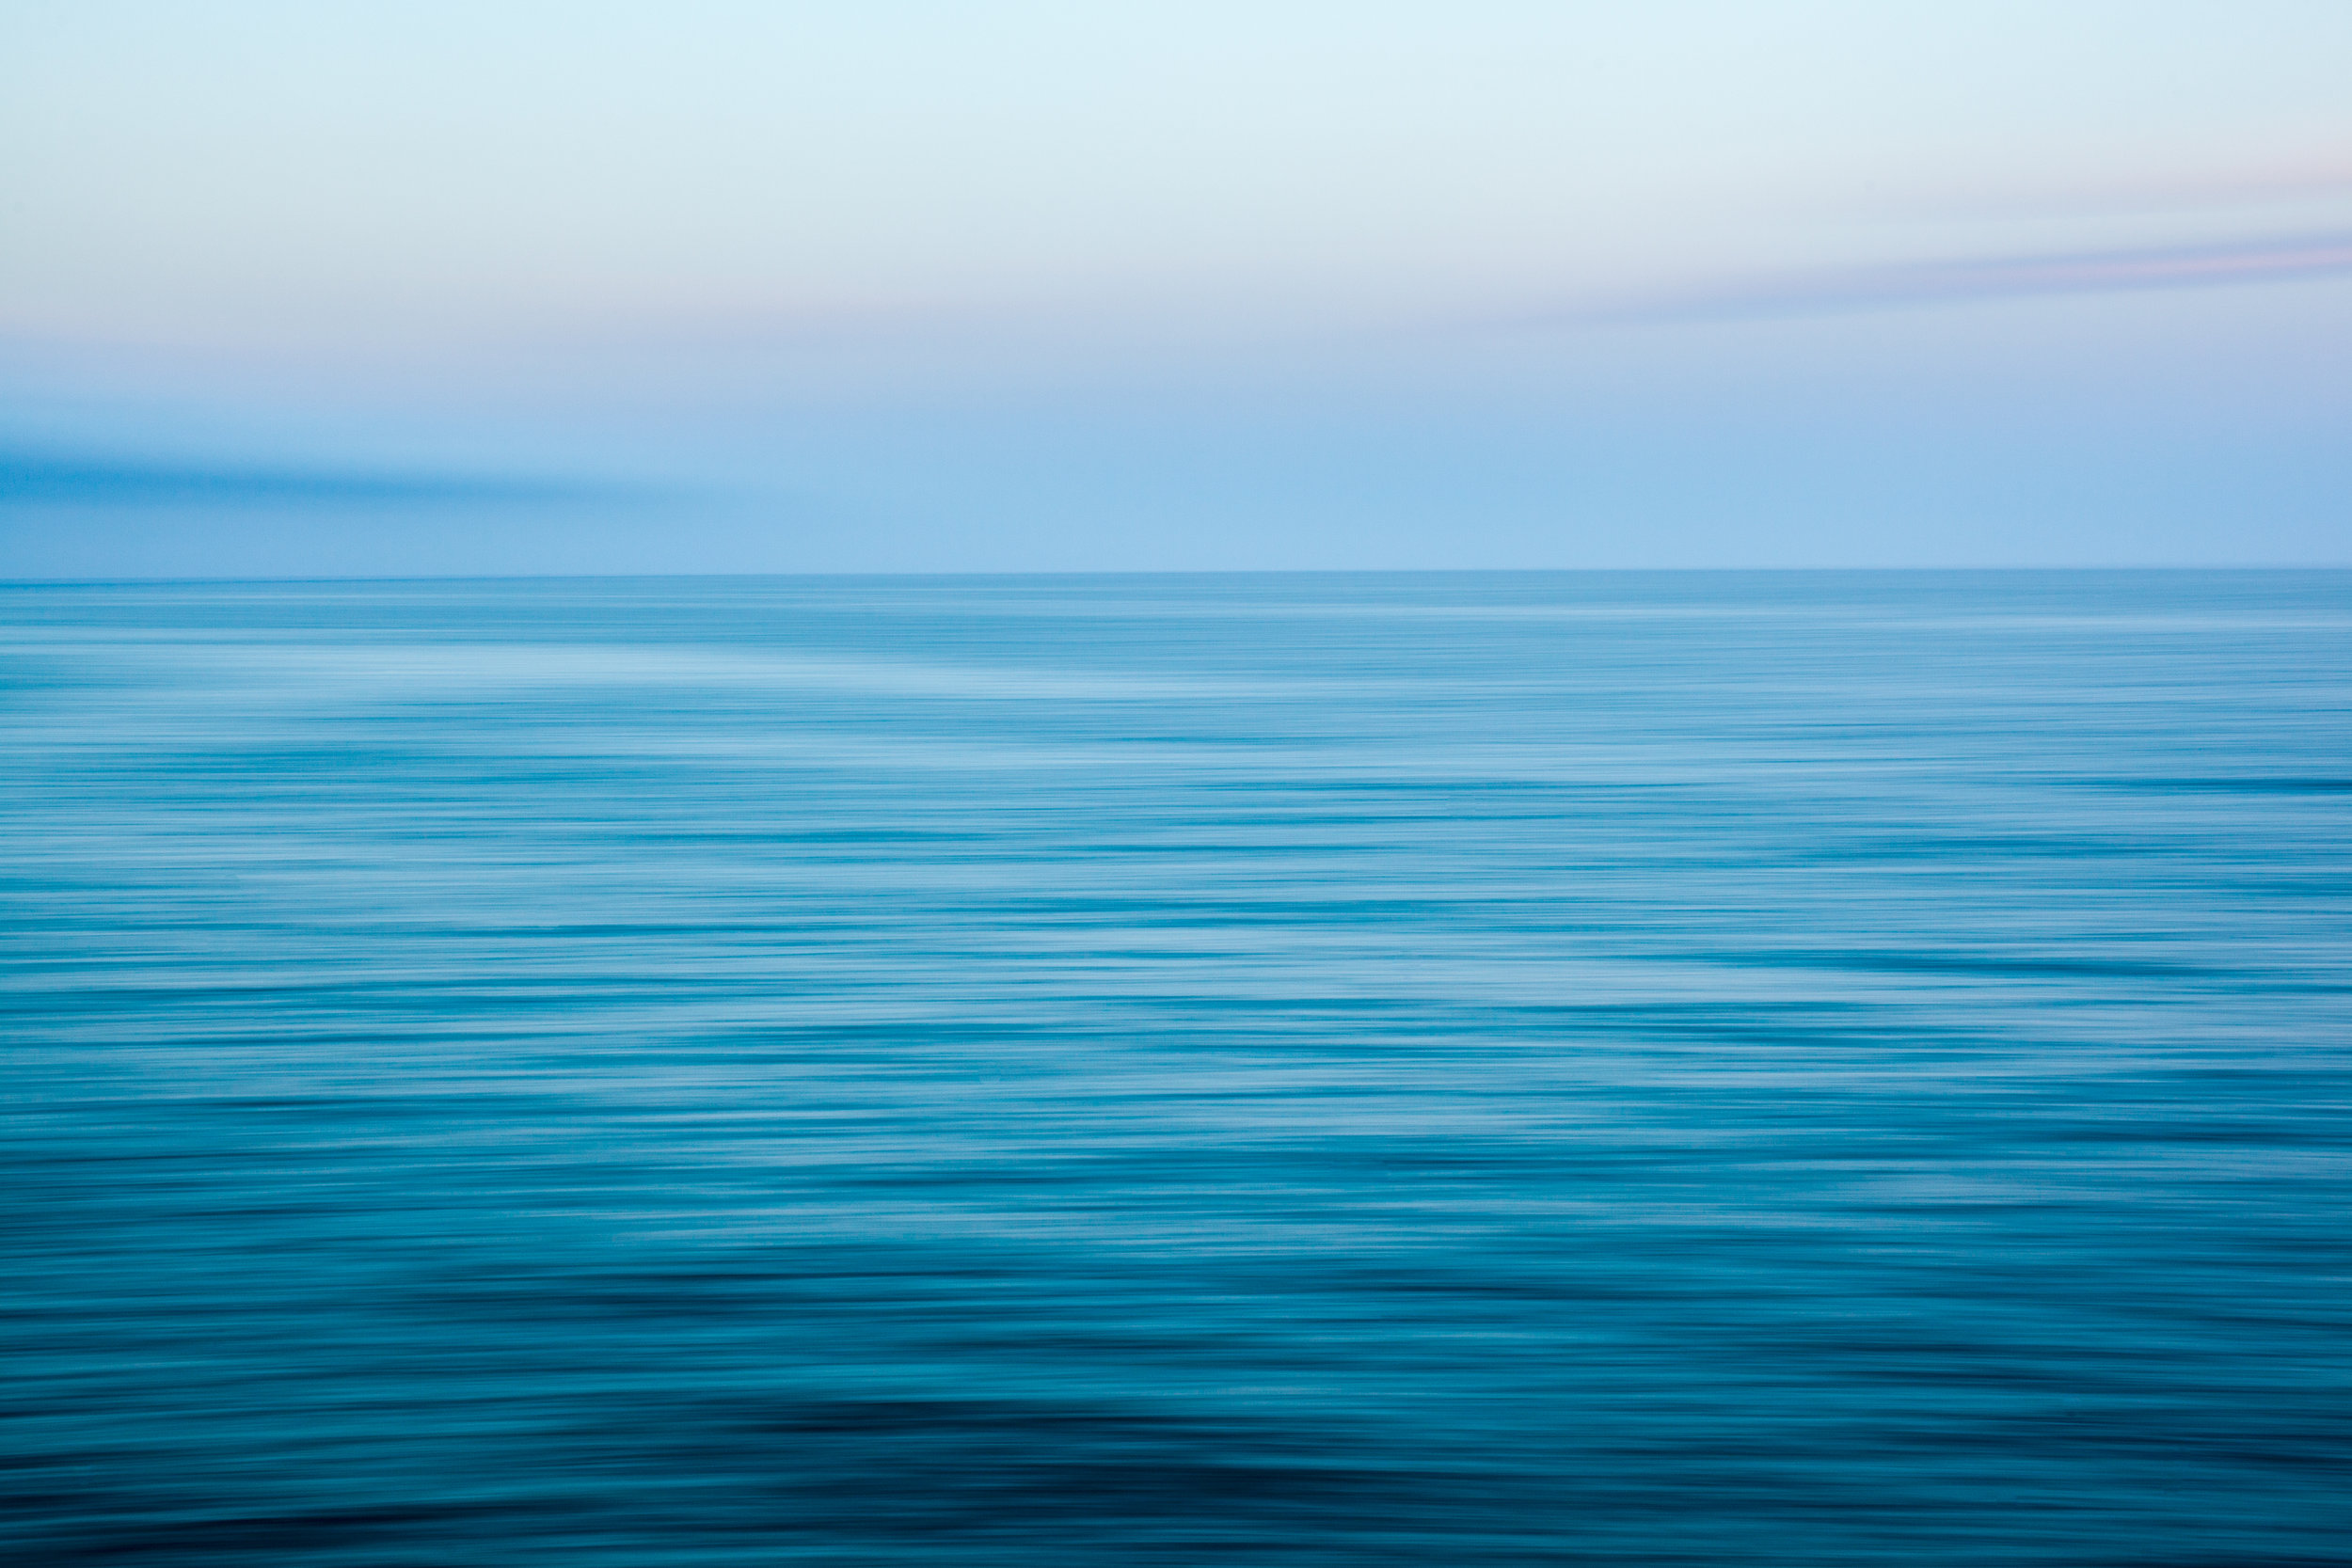 Abstract ocean photography in Barcelona, Spain.